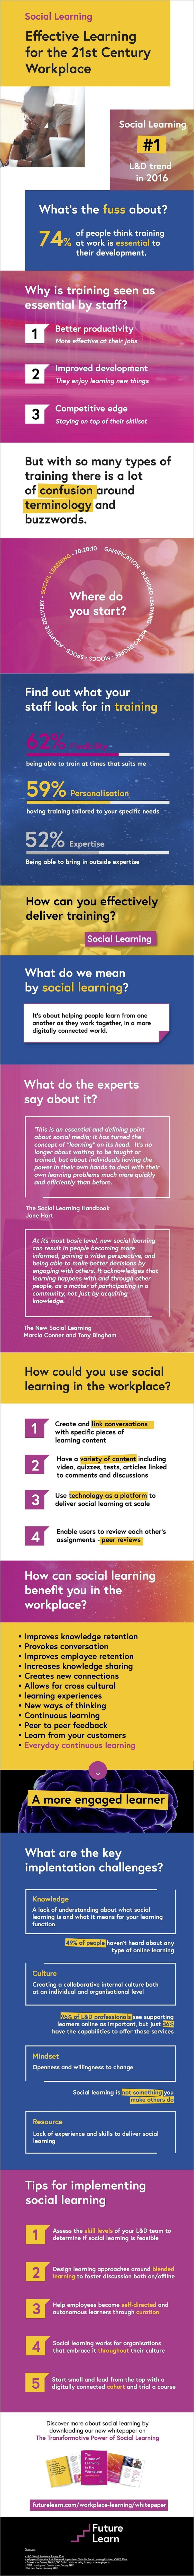 Social Learning: Effective Learning for the 21st Century Workplace Infographic